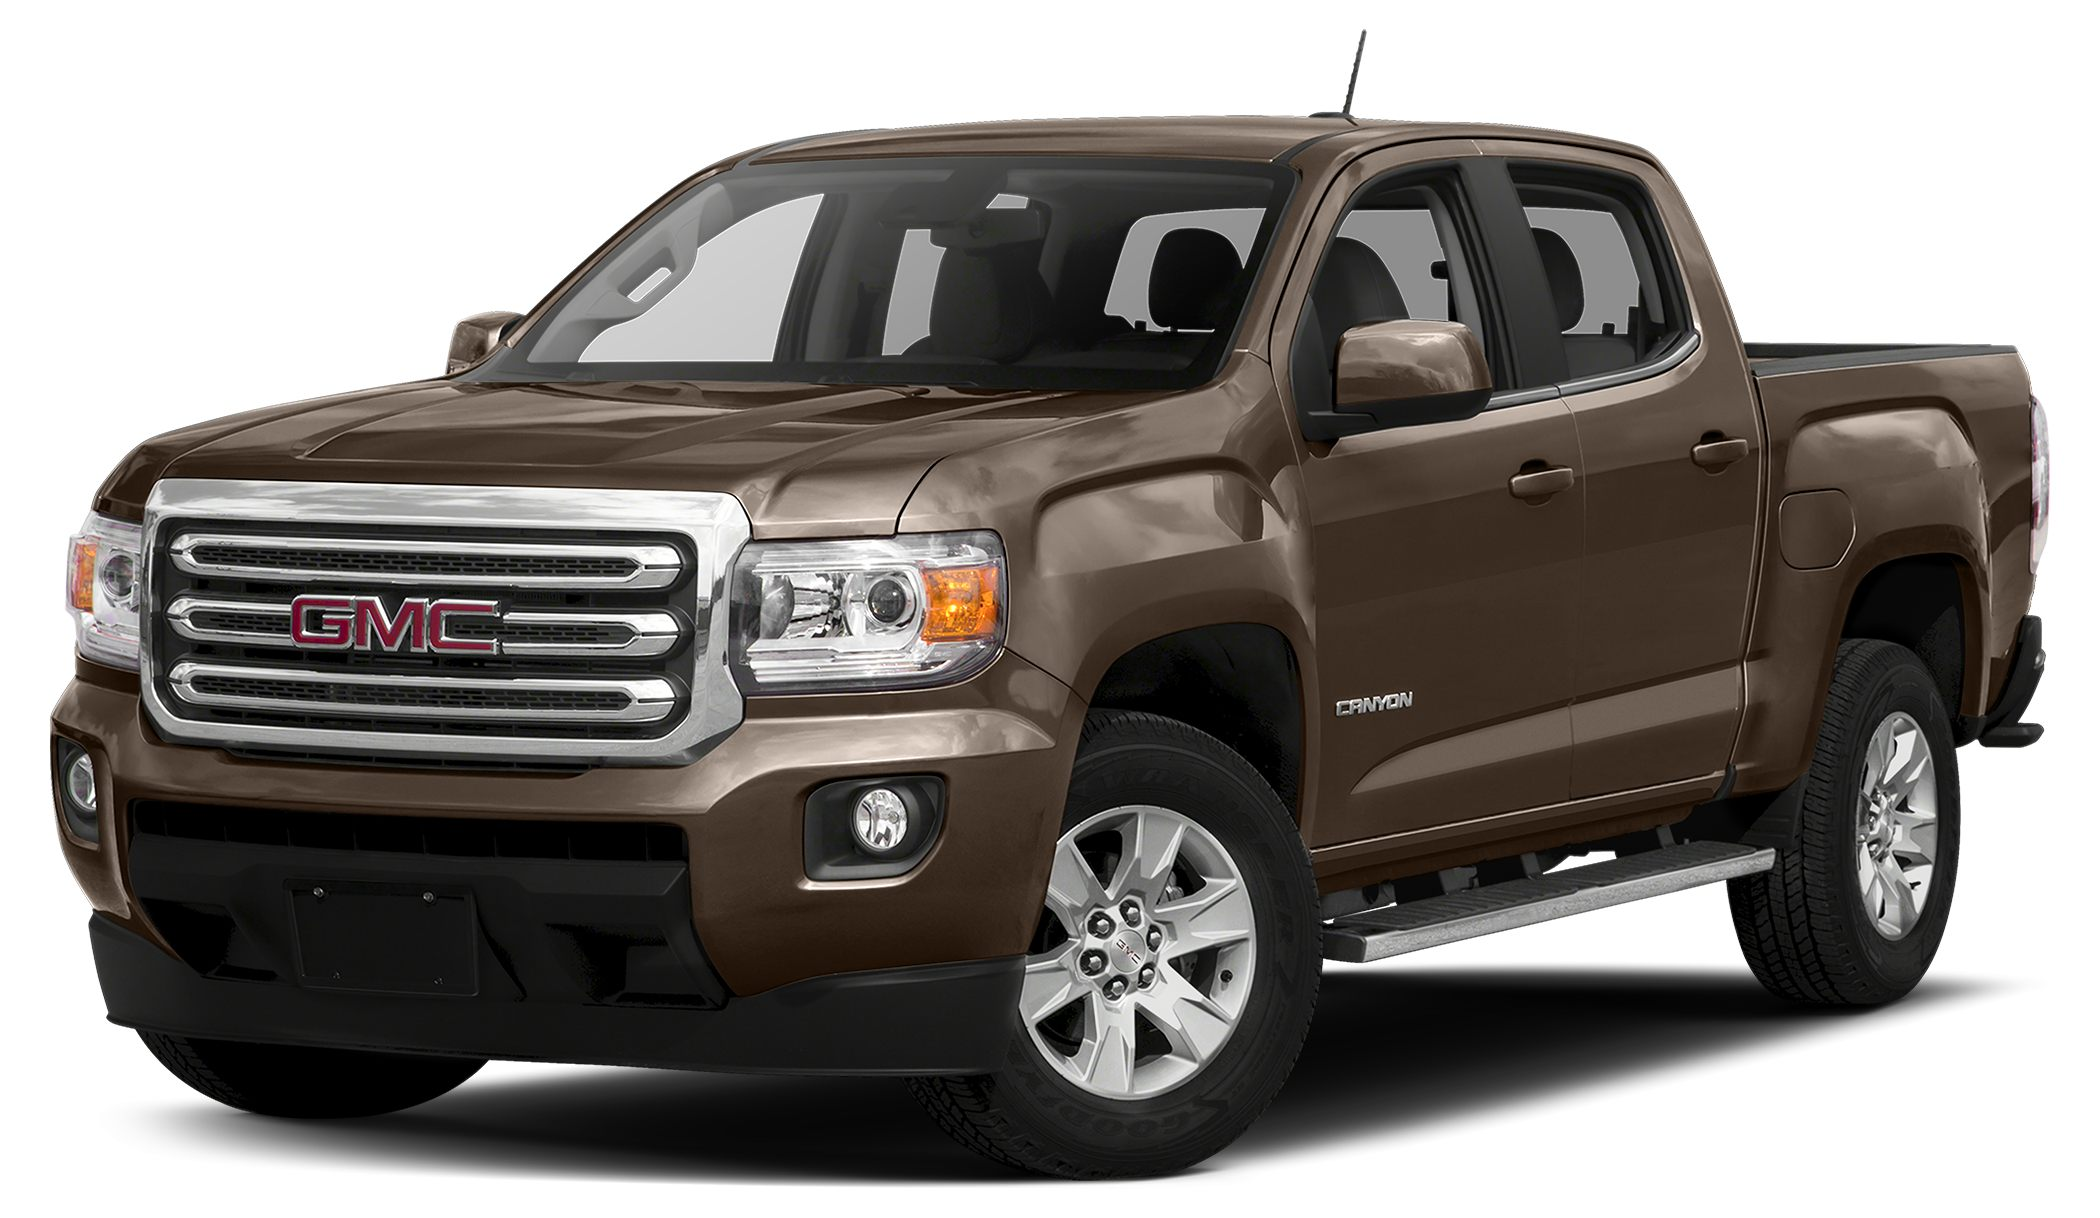 2016 GMC Canyon SLE FUEL EFFICIENT 27 MPG Hwy20 MPG City Alloy Wheels SLE CONVENIENCE PACKAGE